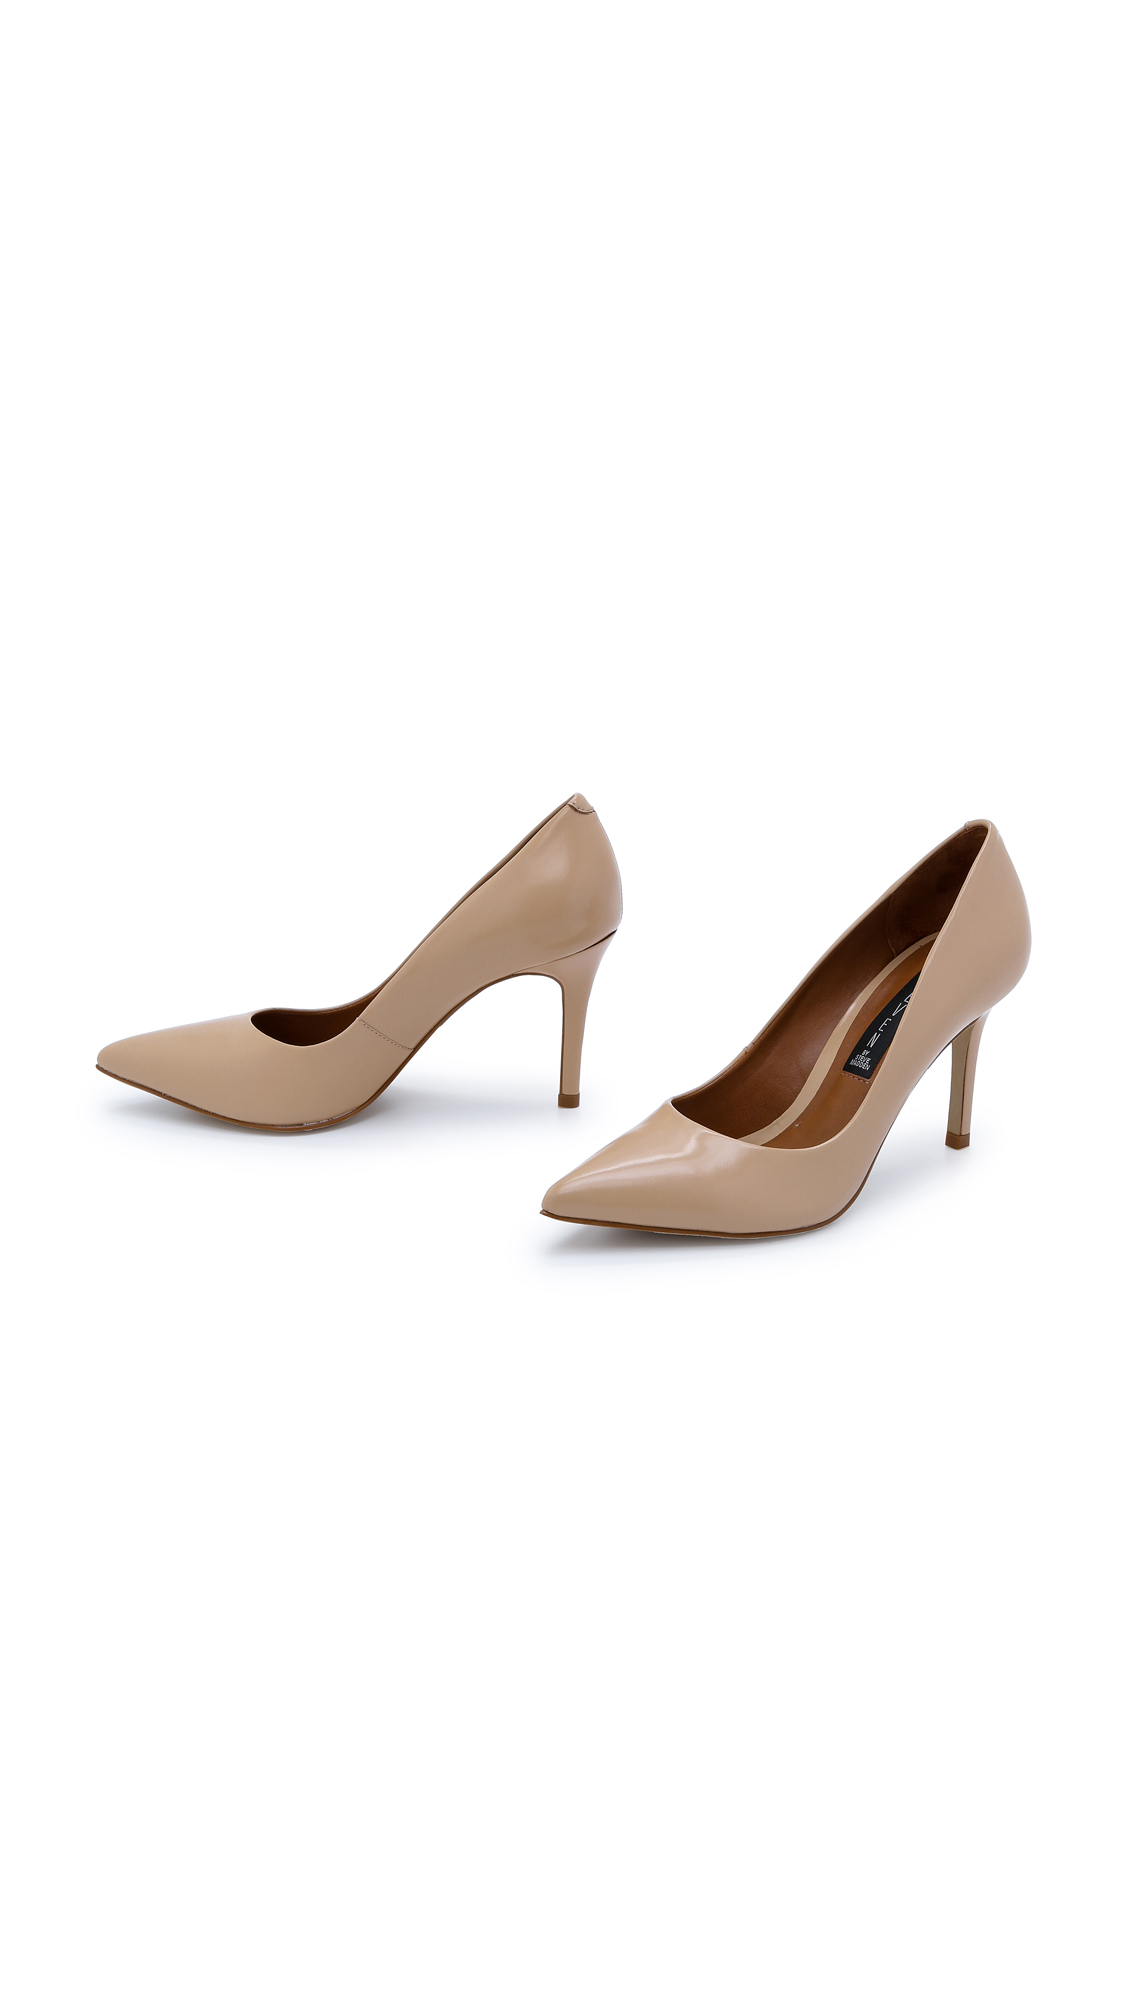 31e86850bc9 Lyst - Steven by Steve Madden Sheila Pumps - Nude in Natural